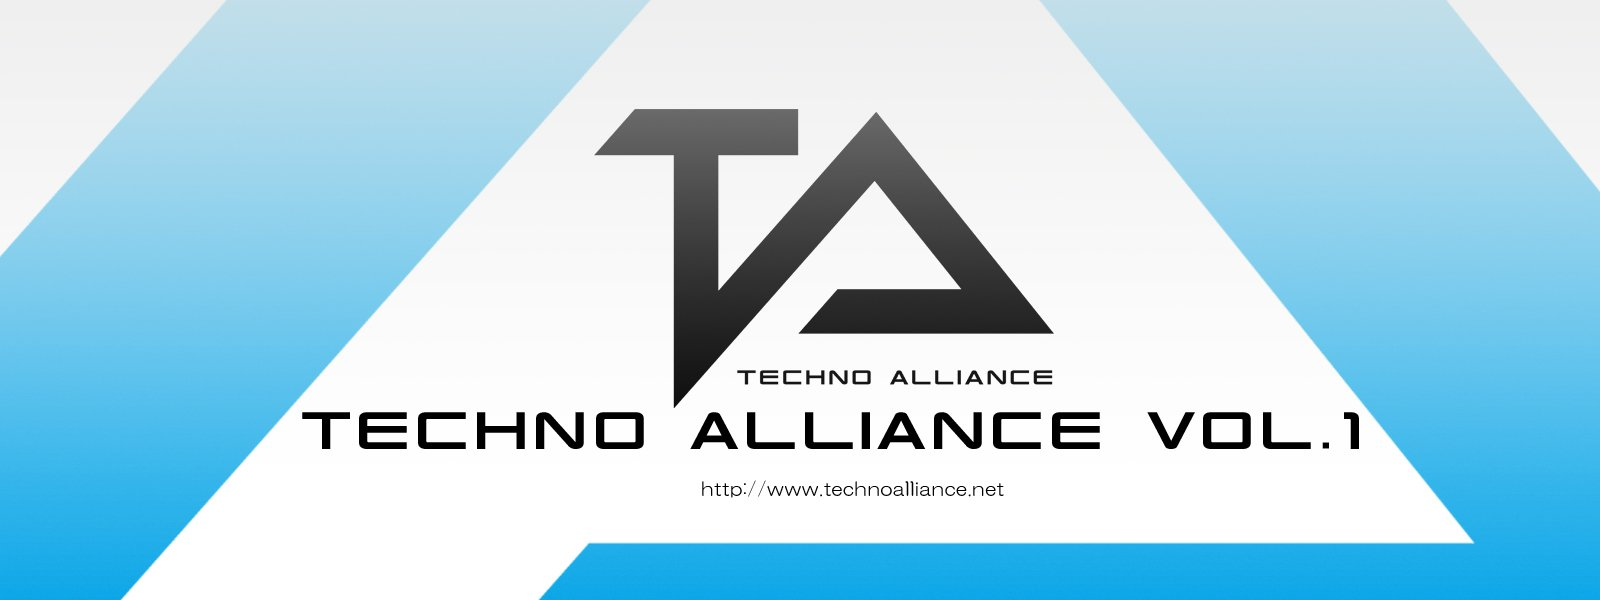 TECHNO ALLIANCE企画